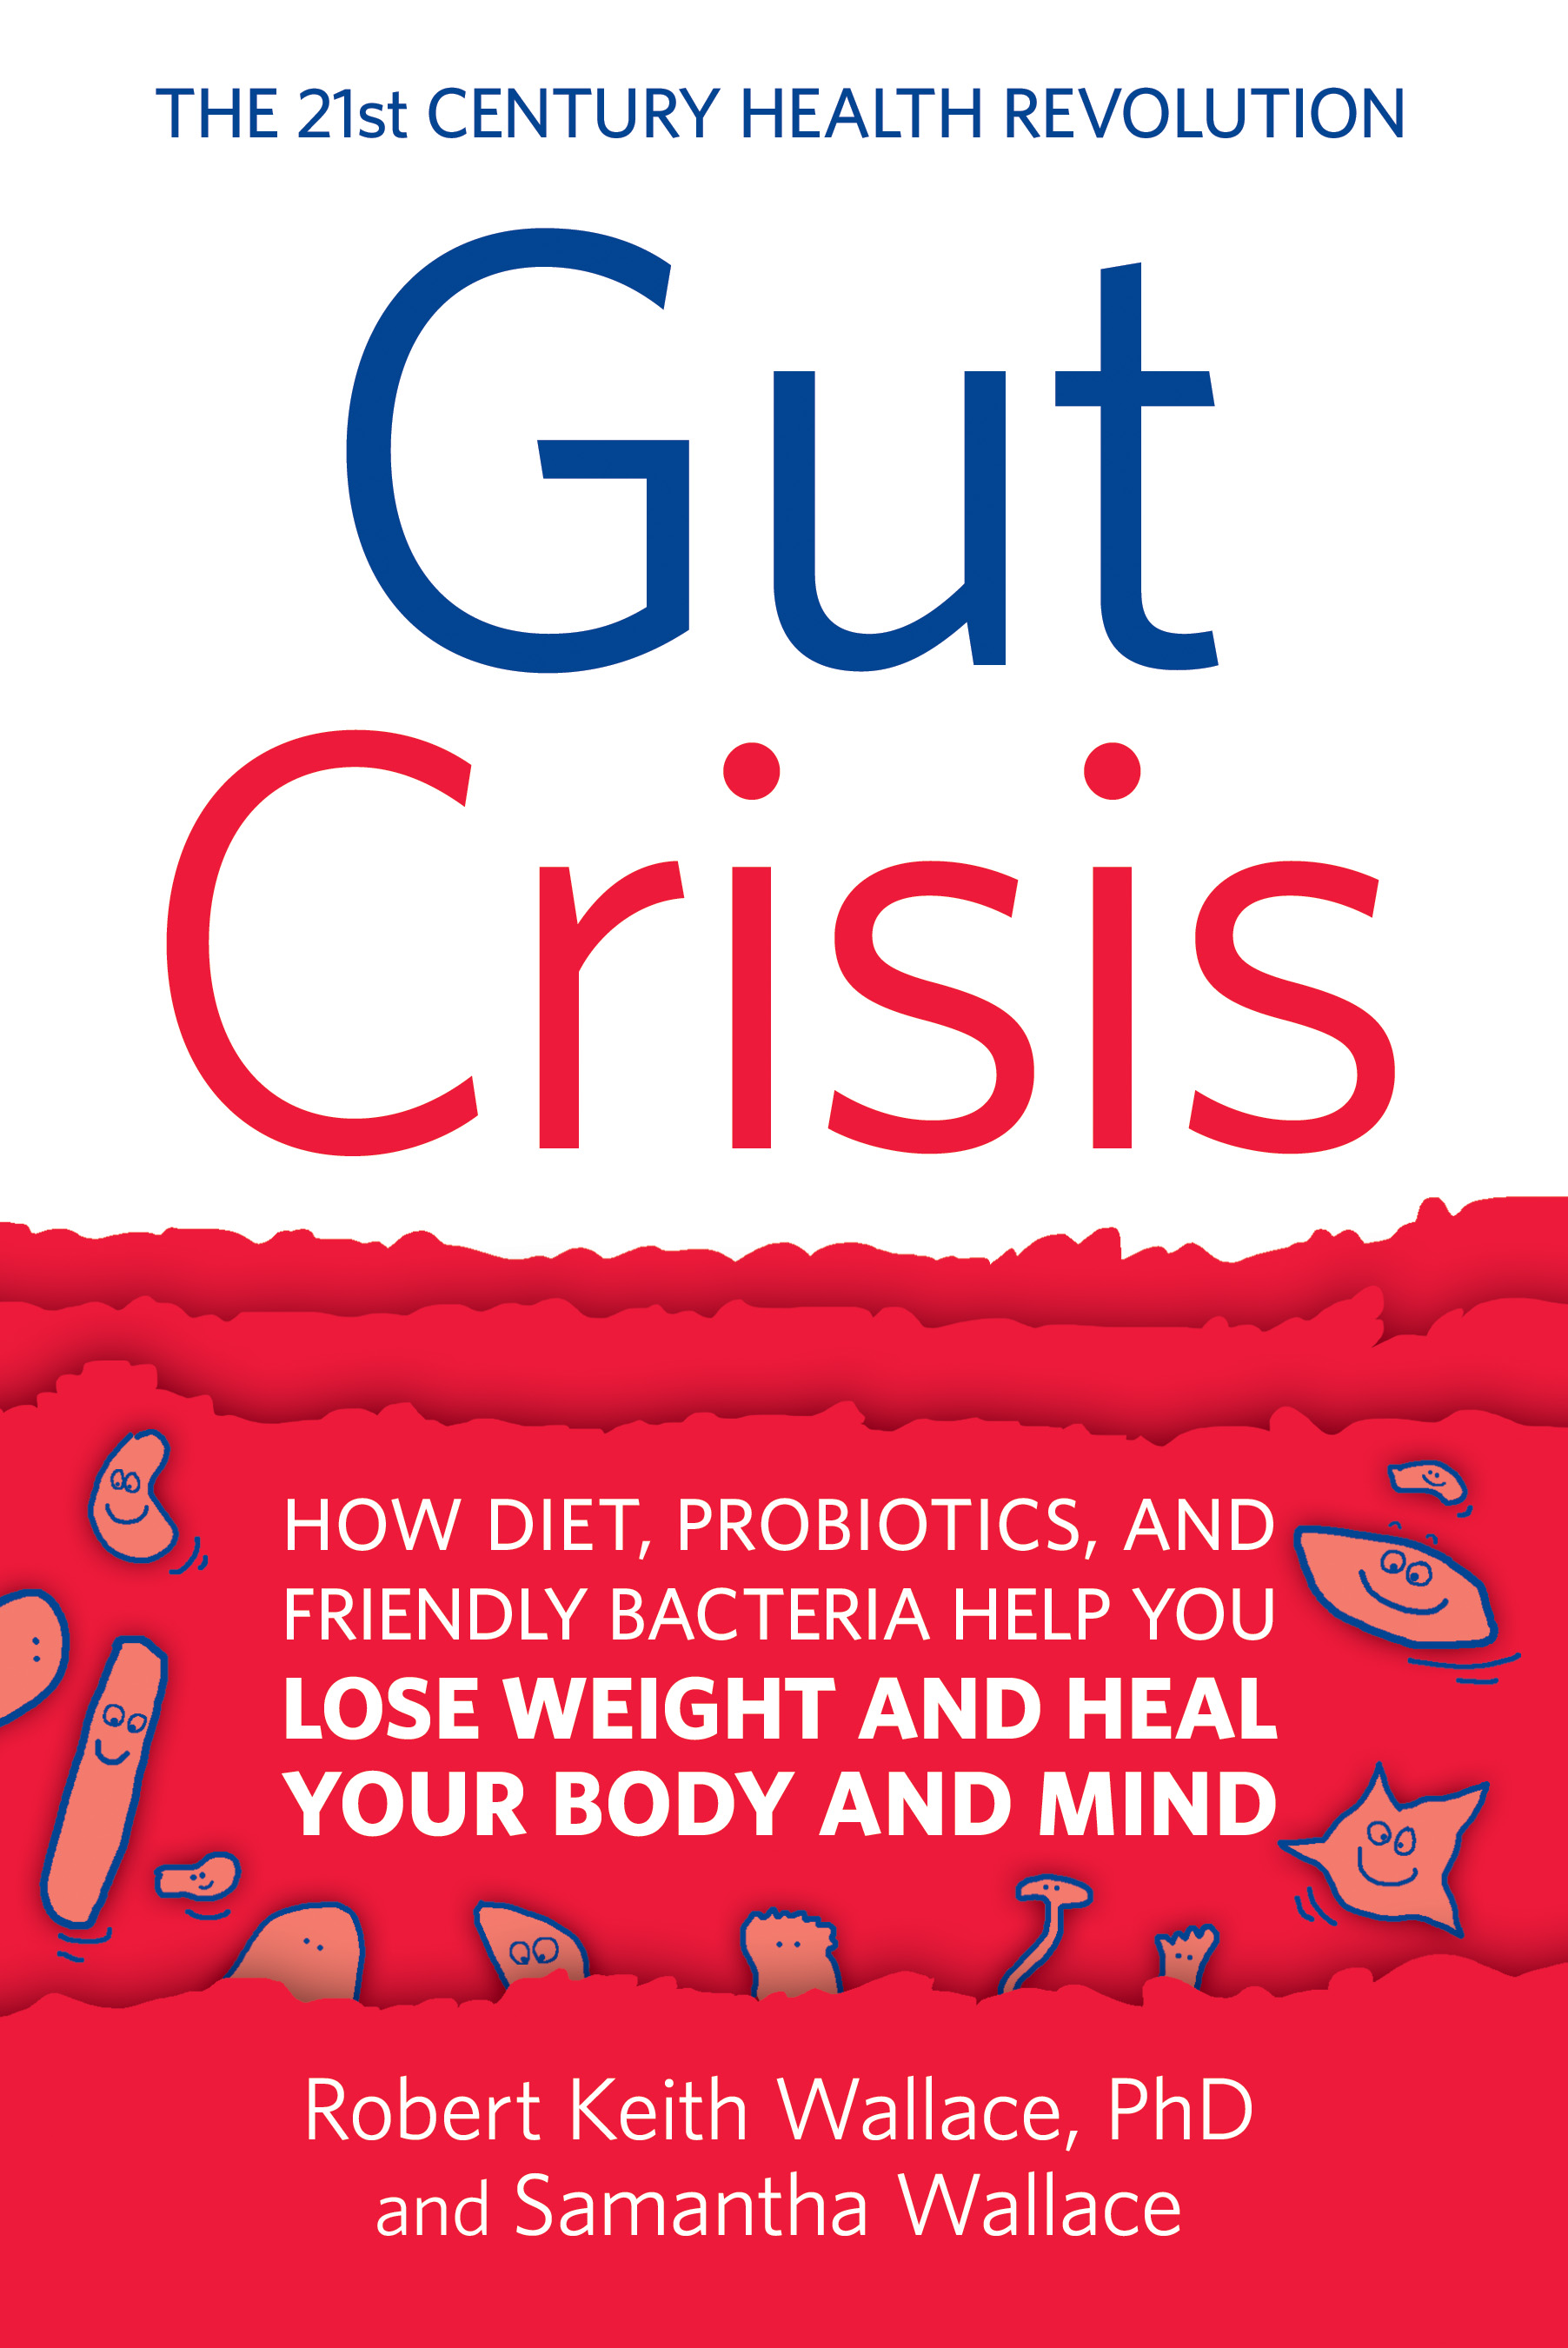 Lose weight with probiotic bacteria pics